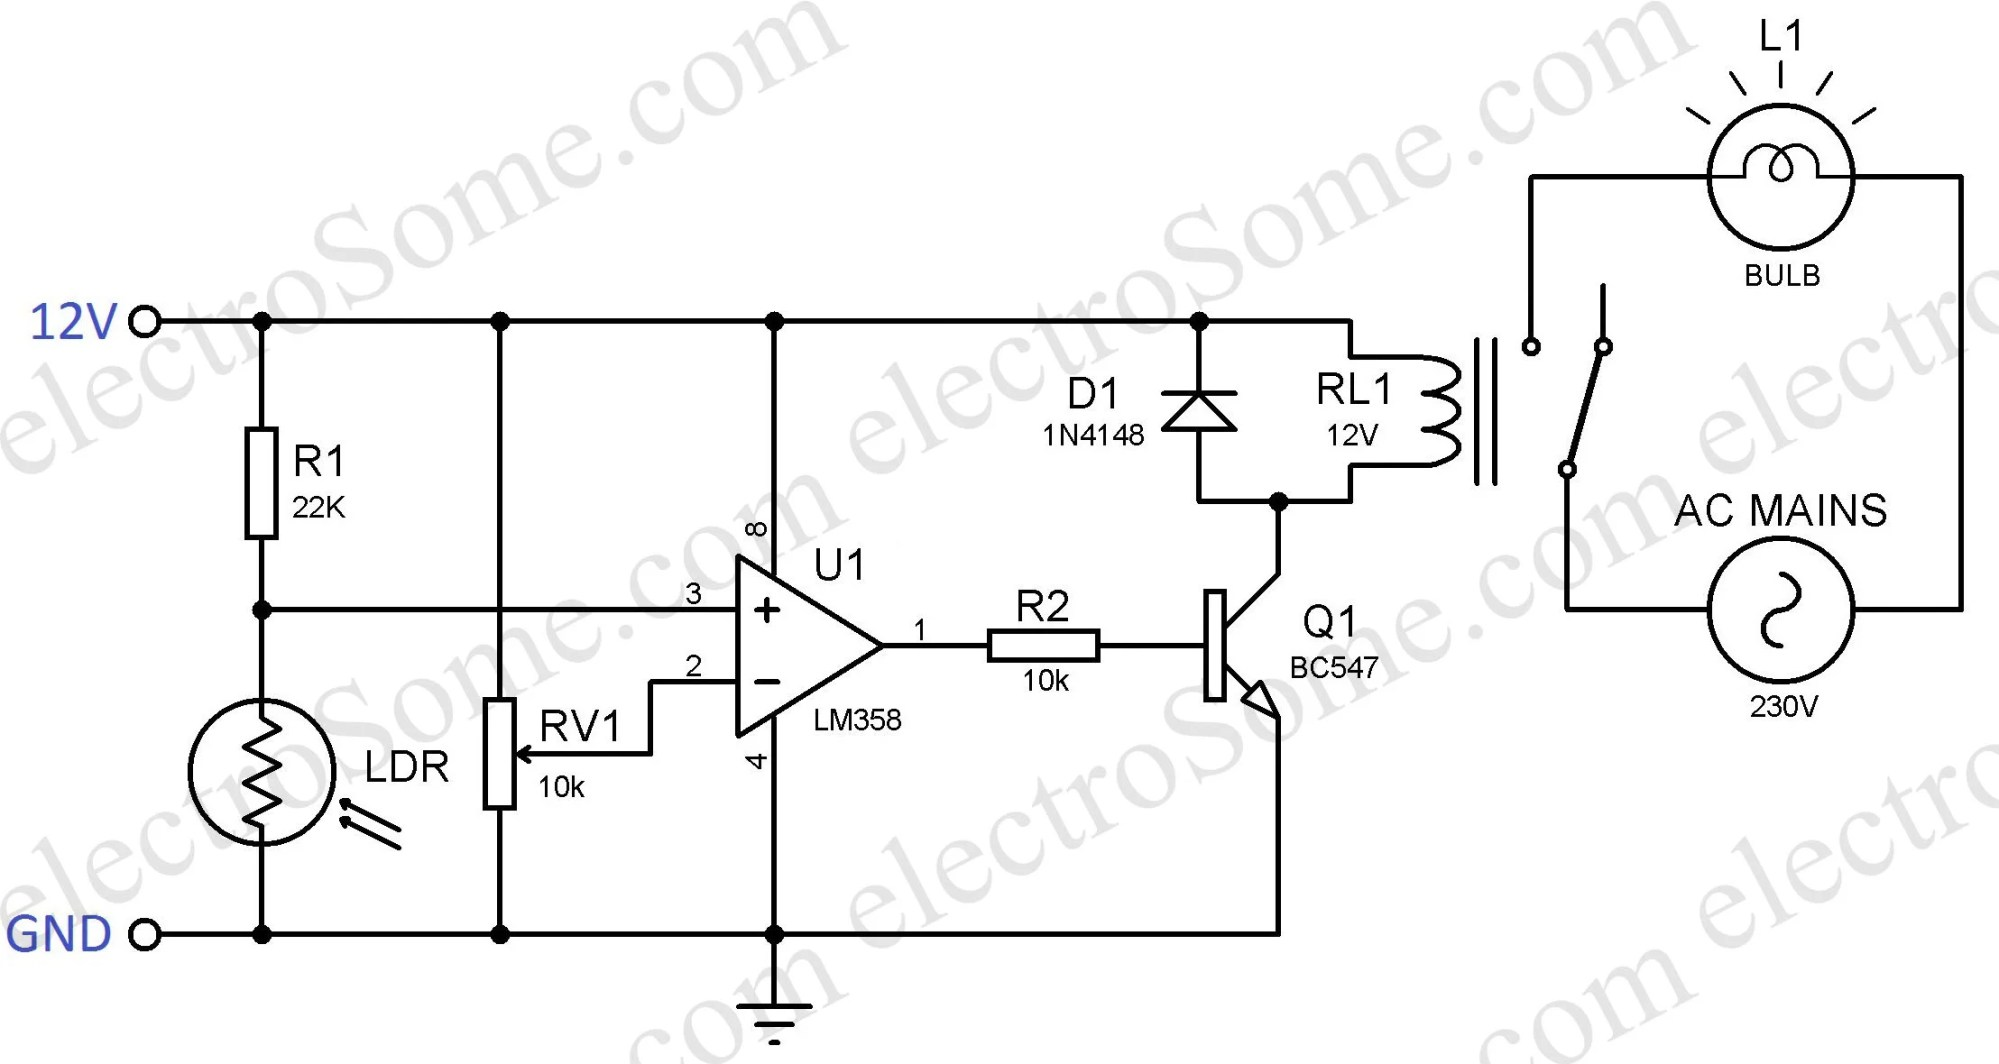 hight resolution of automatic night lamp using ldr